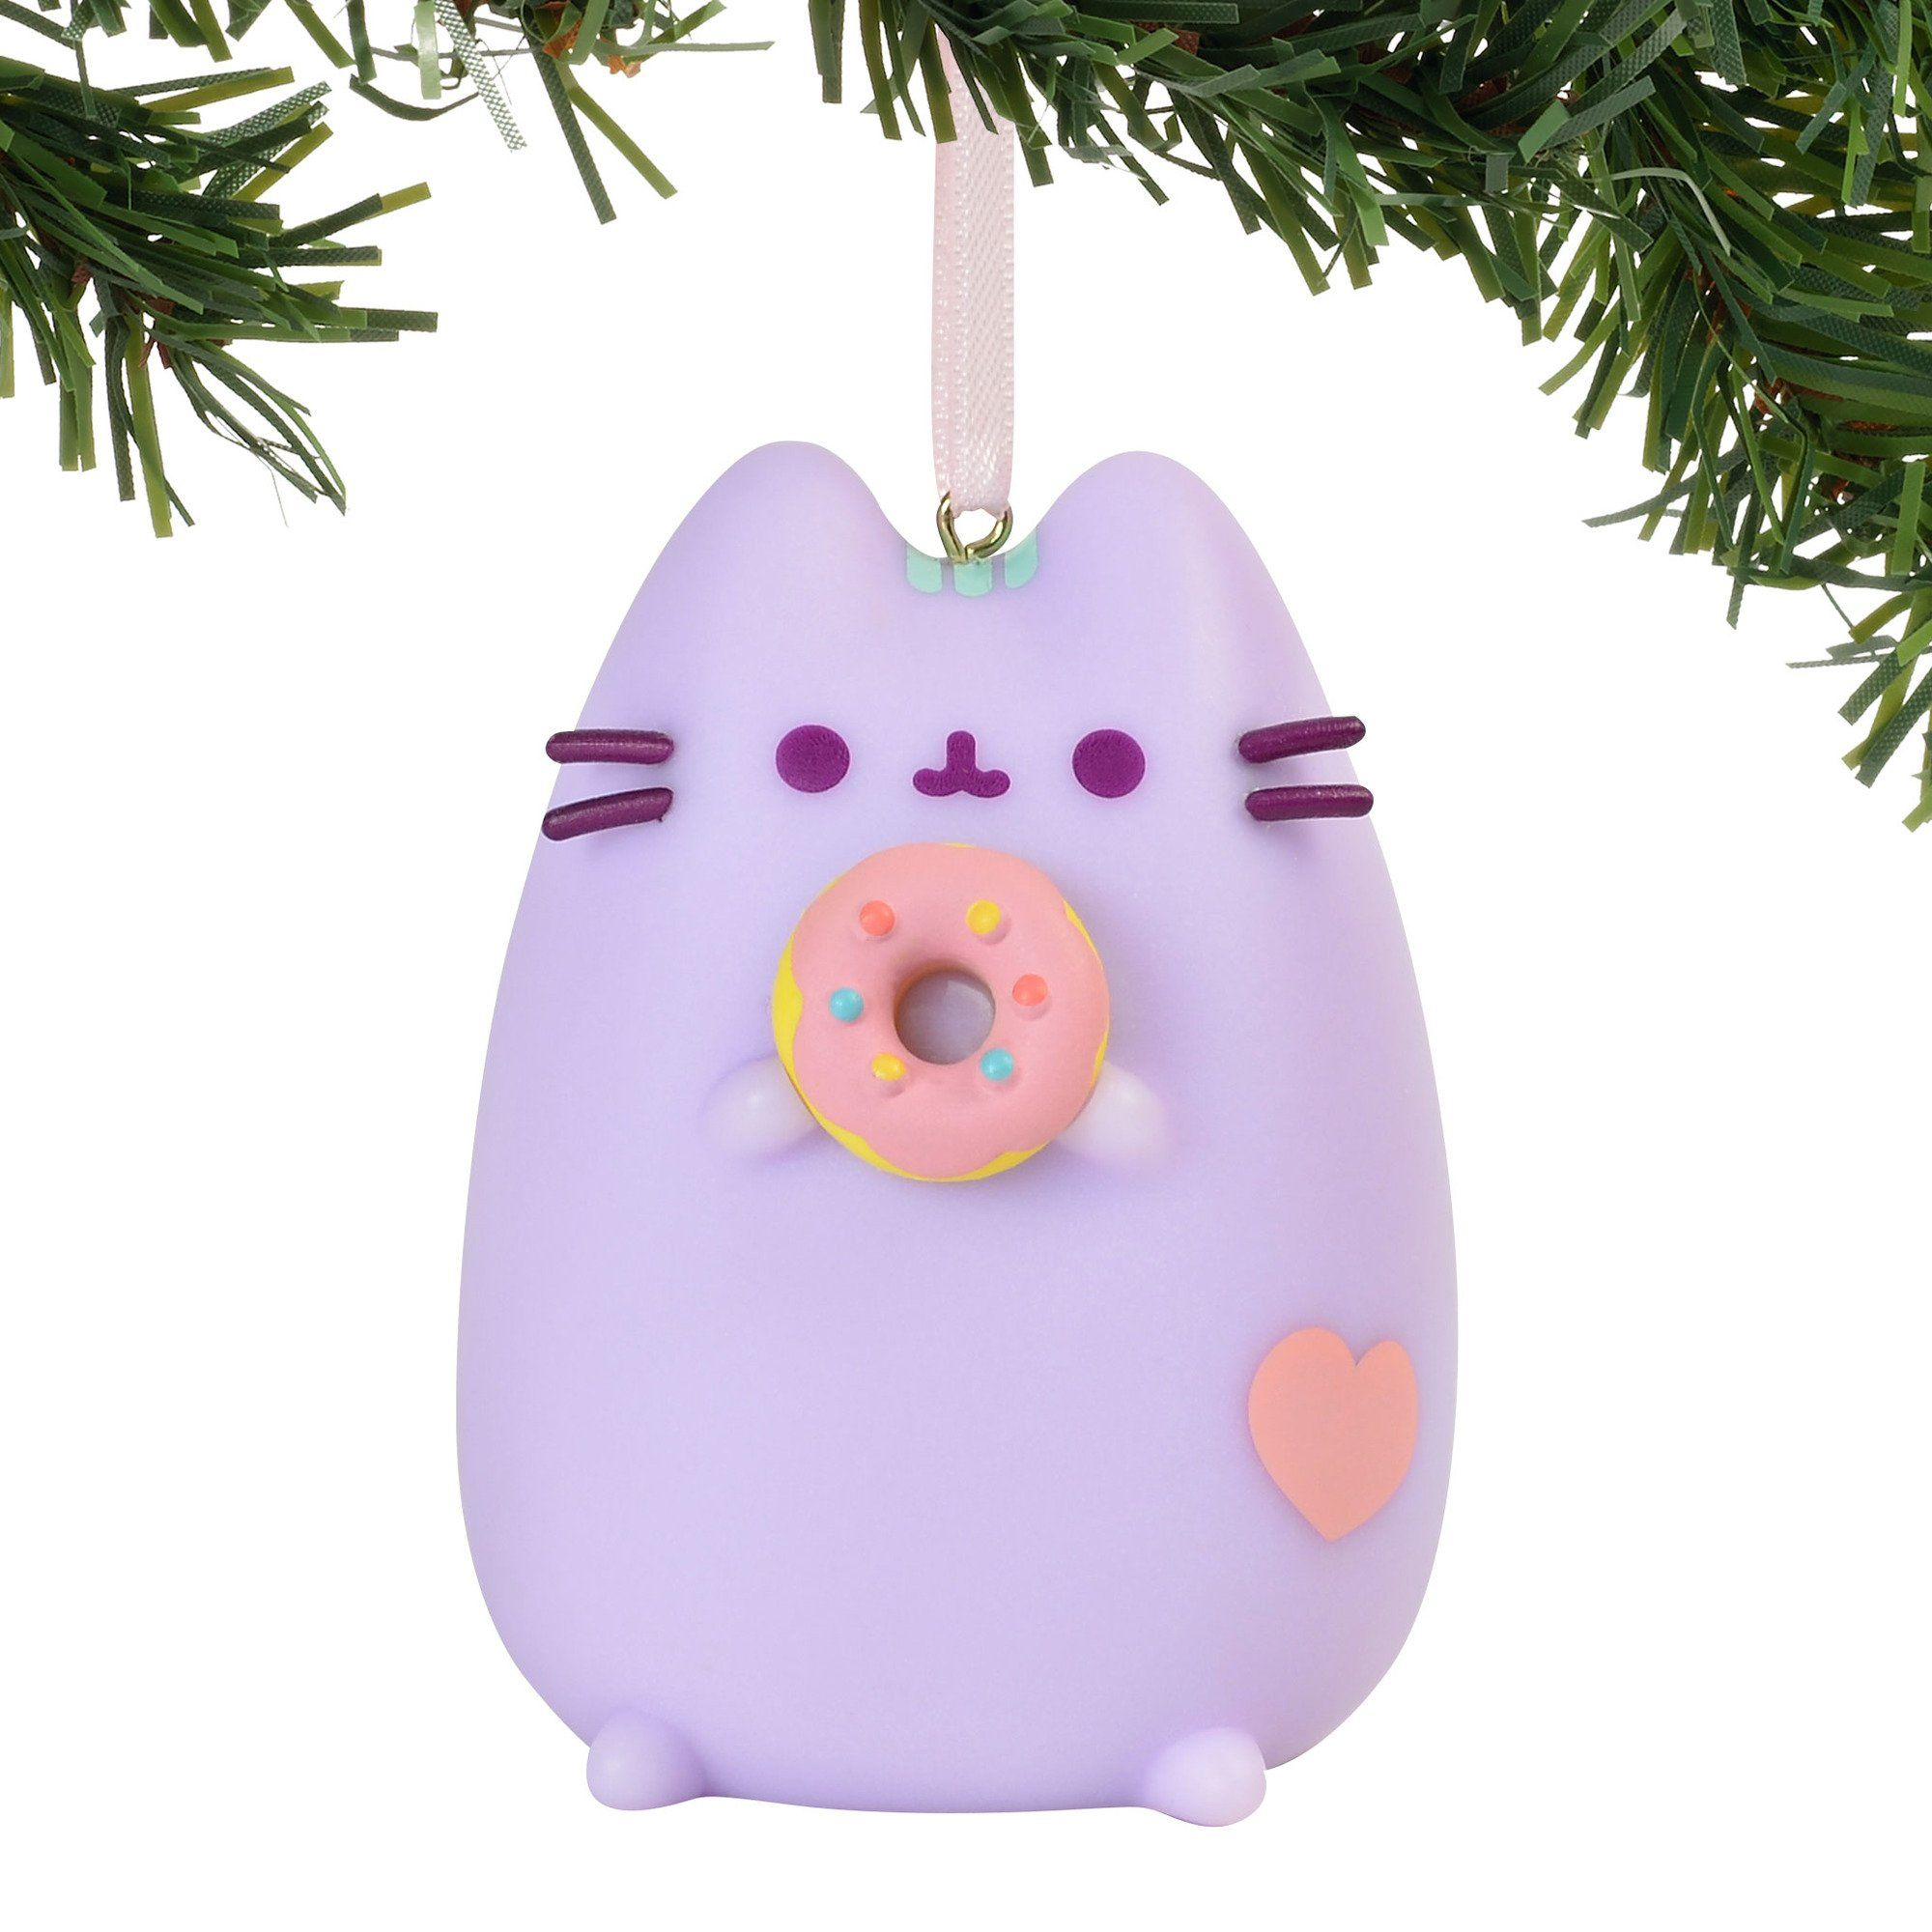 Department 56 Pusheen Purple With Donut Ornament, 25 Inch